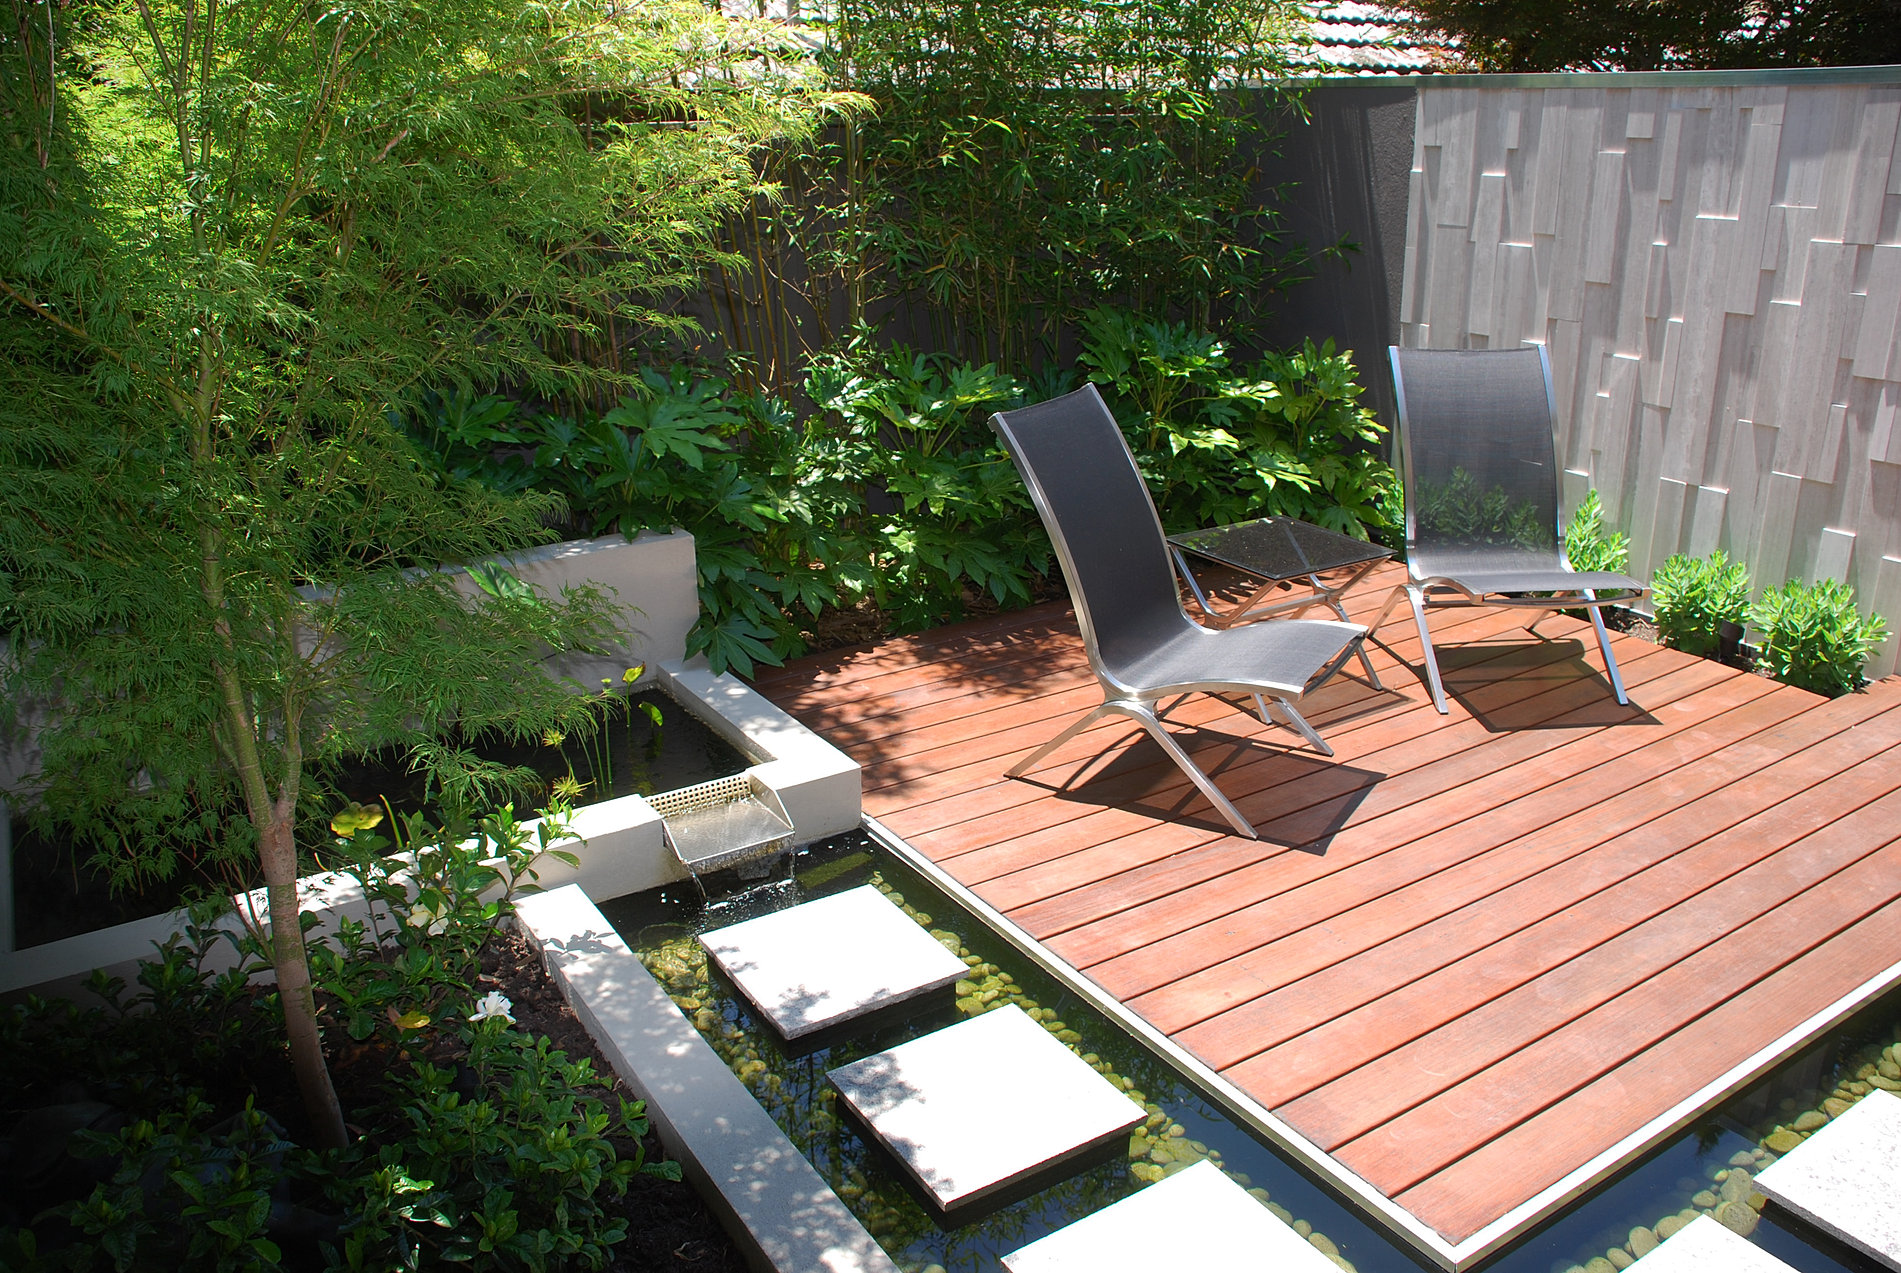 Landscaping melbourne melbourne landscape design for Garden planning and design